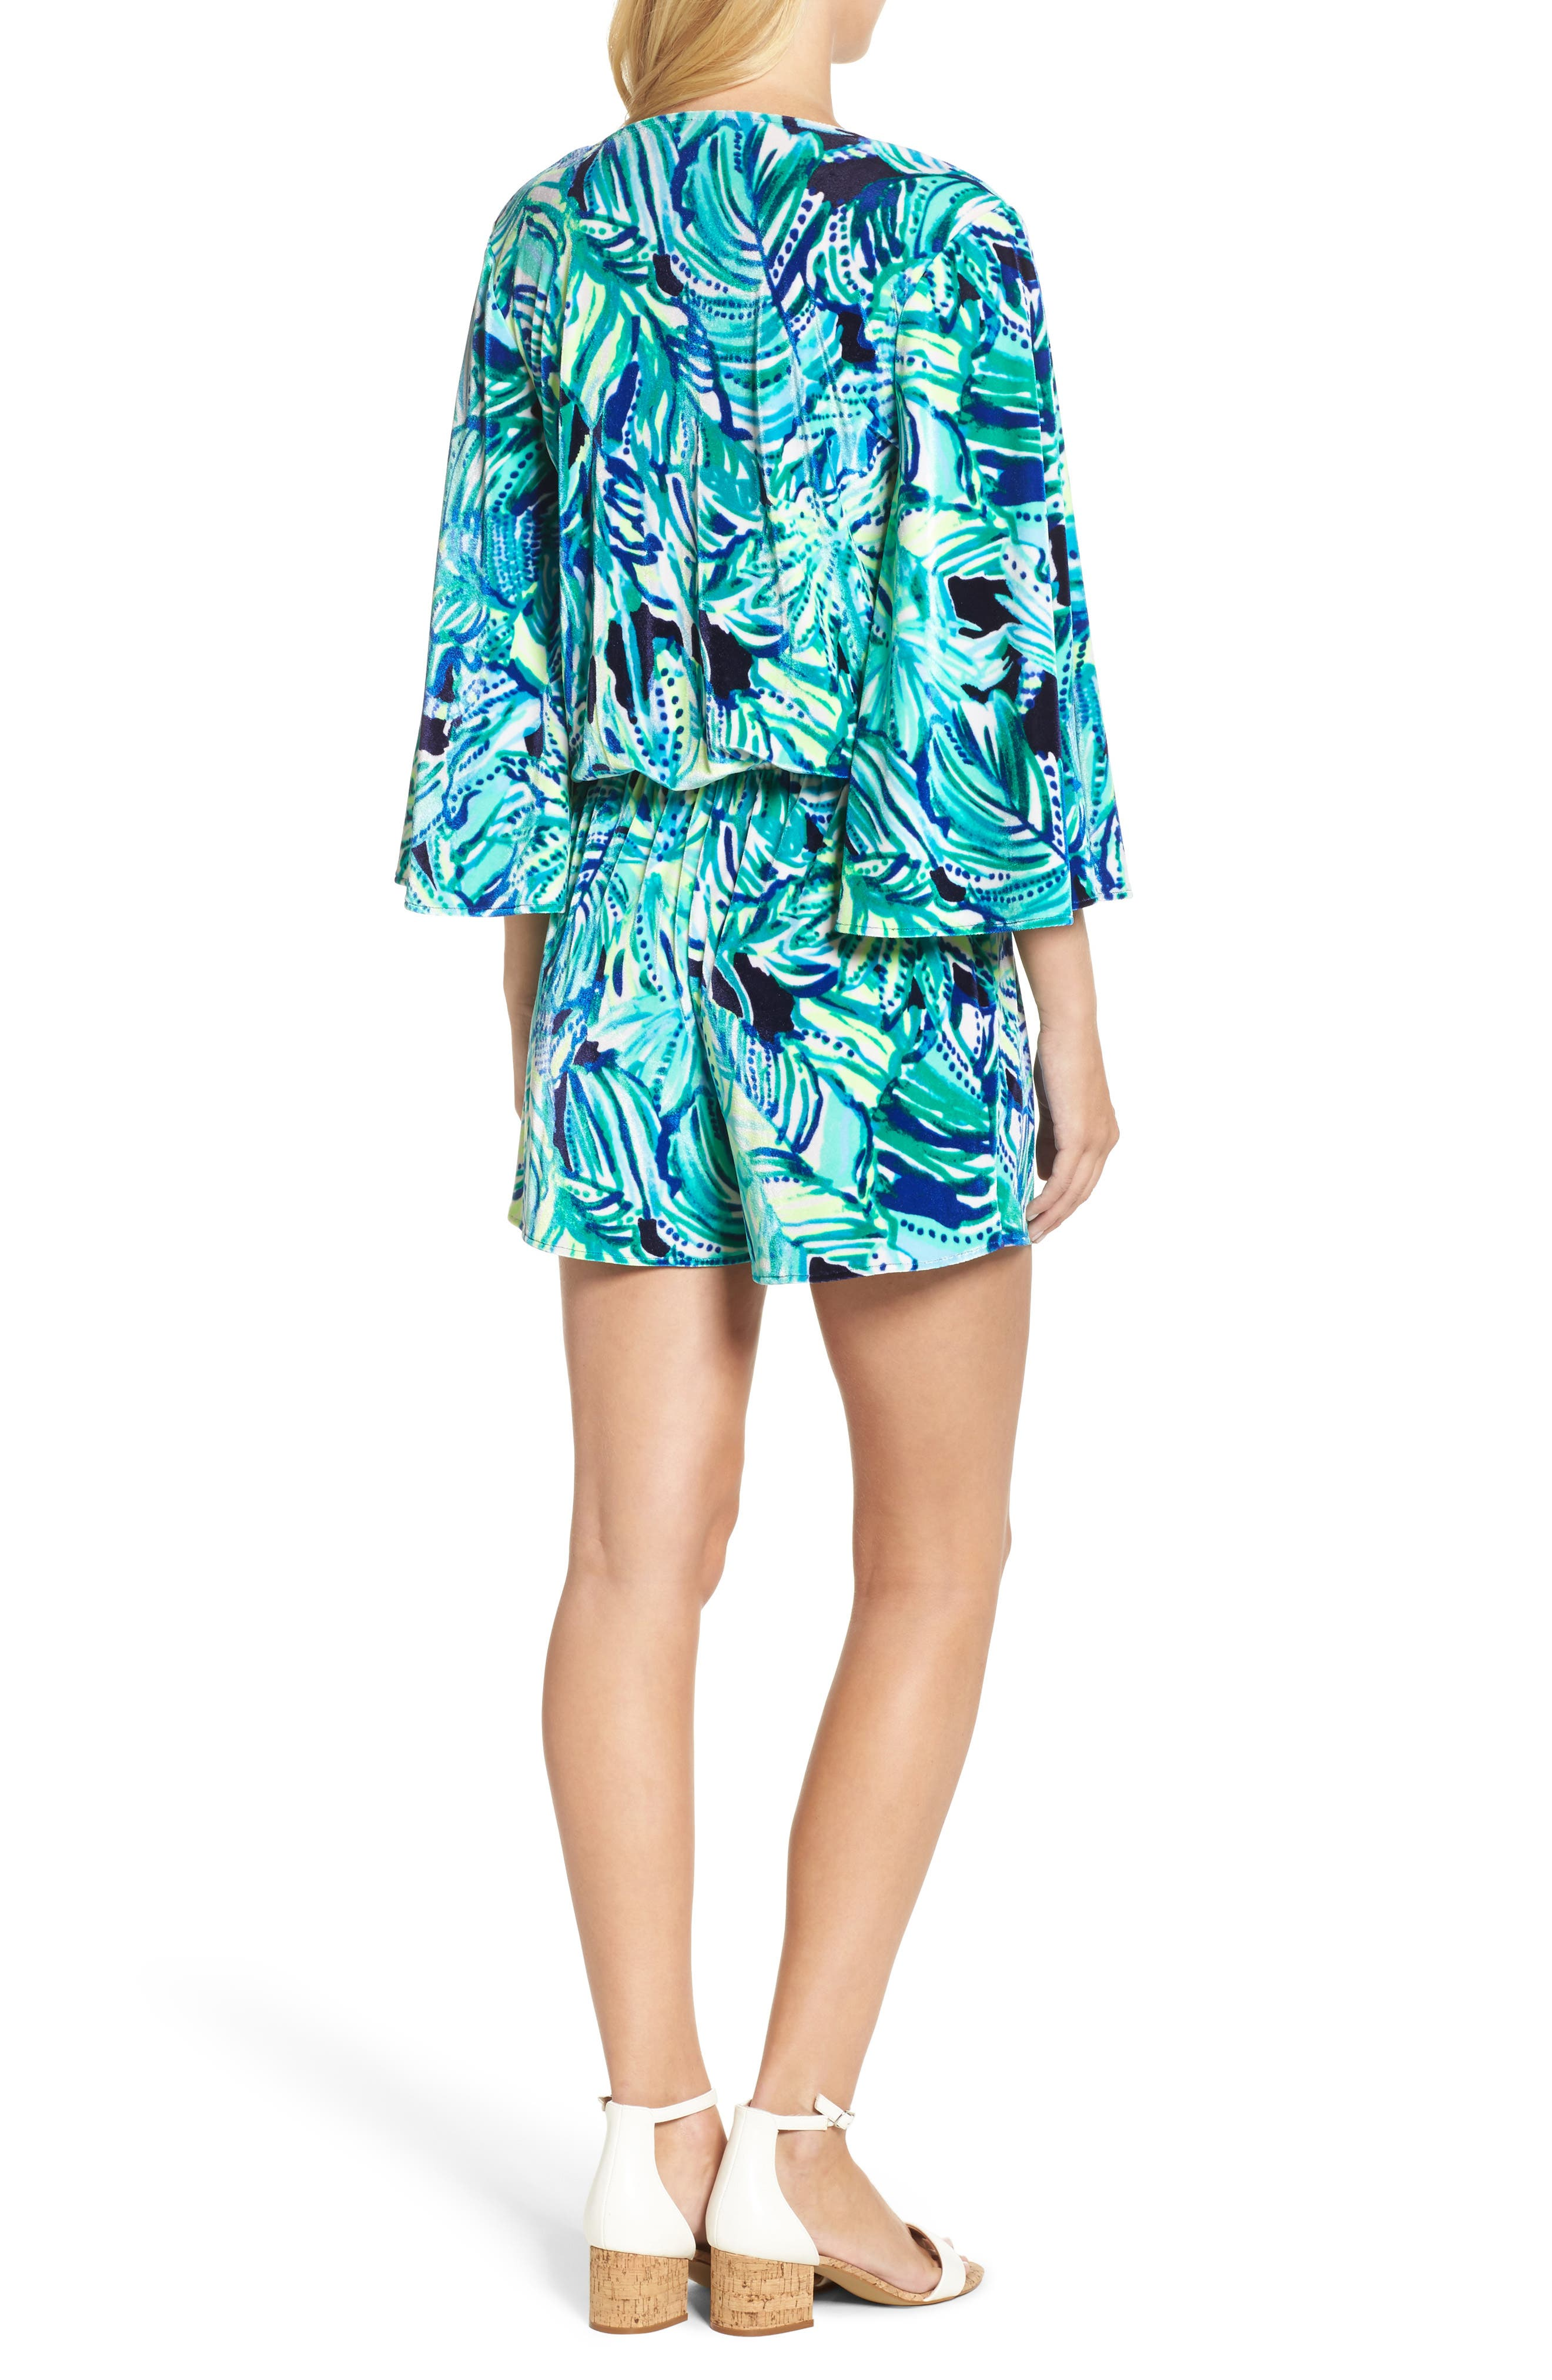 Lily Pulitzer<sup>®</sup> Viviana Romper,                             Alternate thumbnail 2, color,                             440